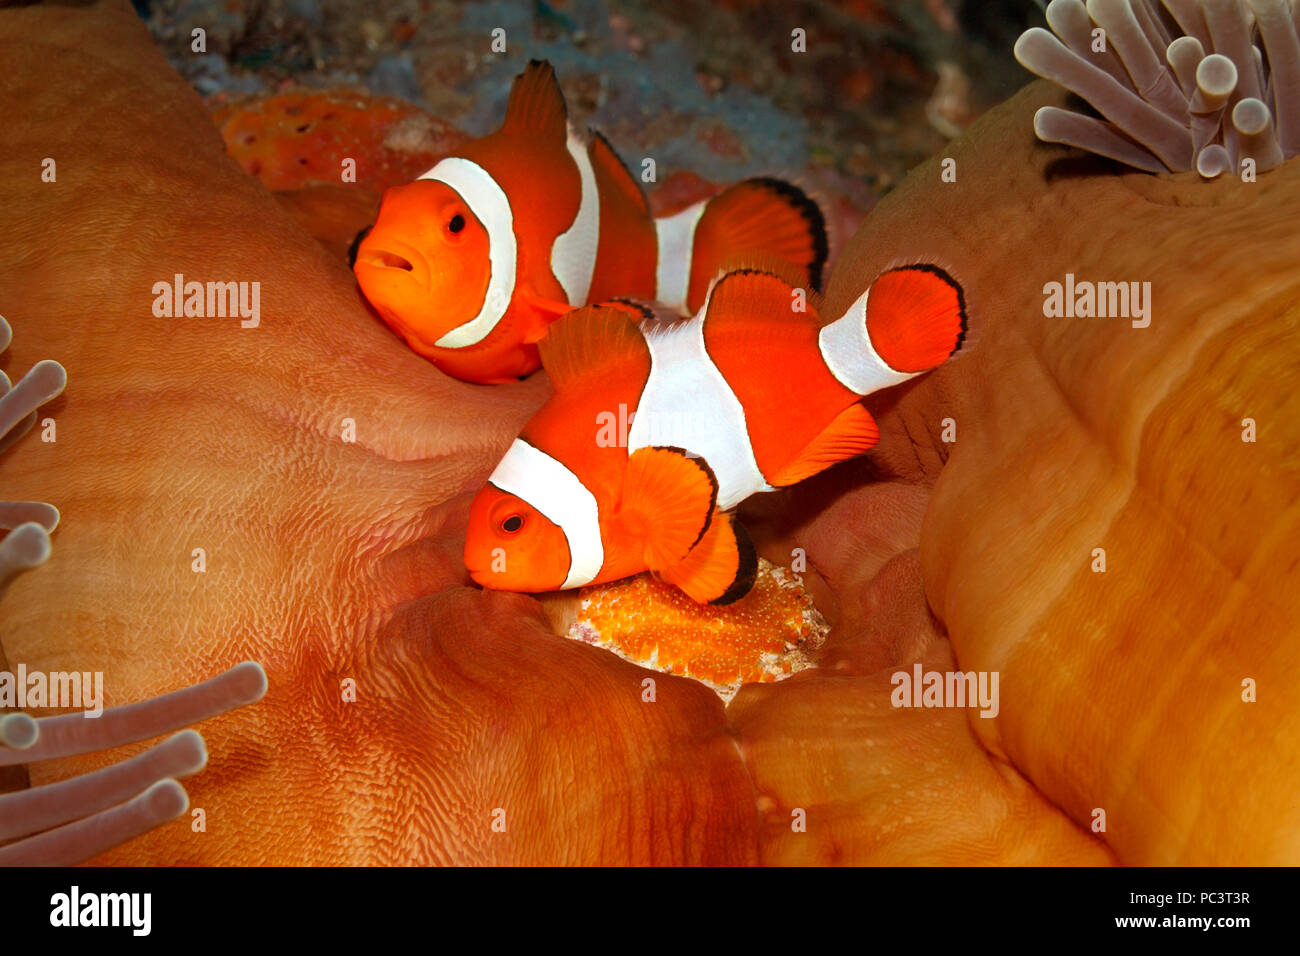 pair-of-clown-anemonefish-amphiprion-percula-tending-eggs-laid-at-base-of-the-host-magnificent-anemone-heteractis-magnifica-tulamben-bali-PC3T3R.jpg